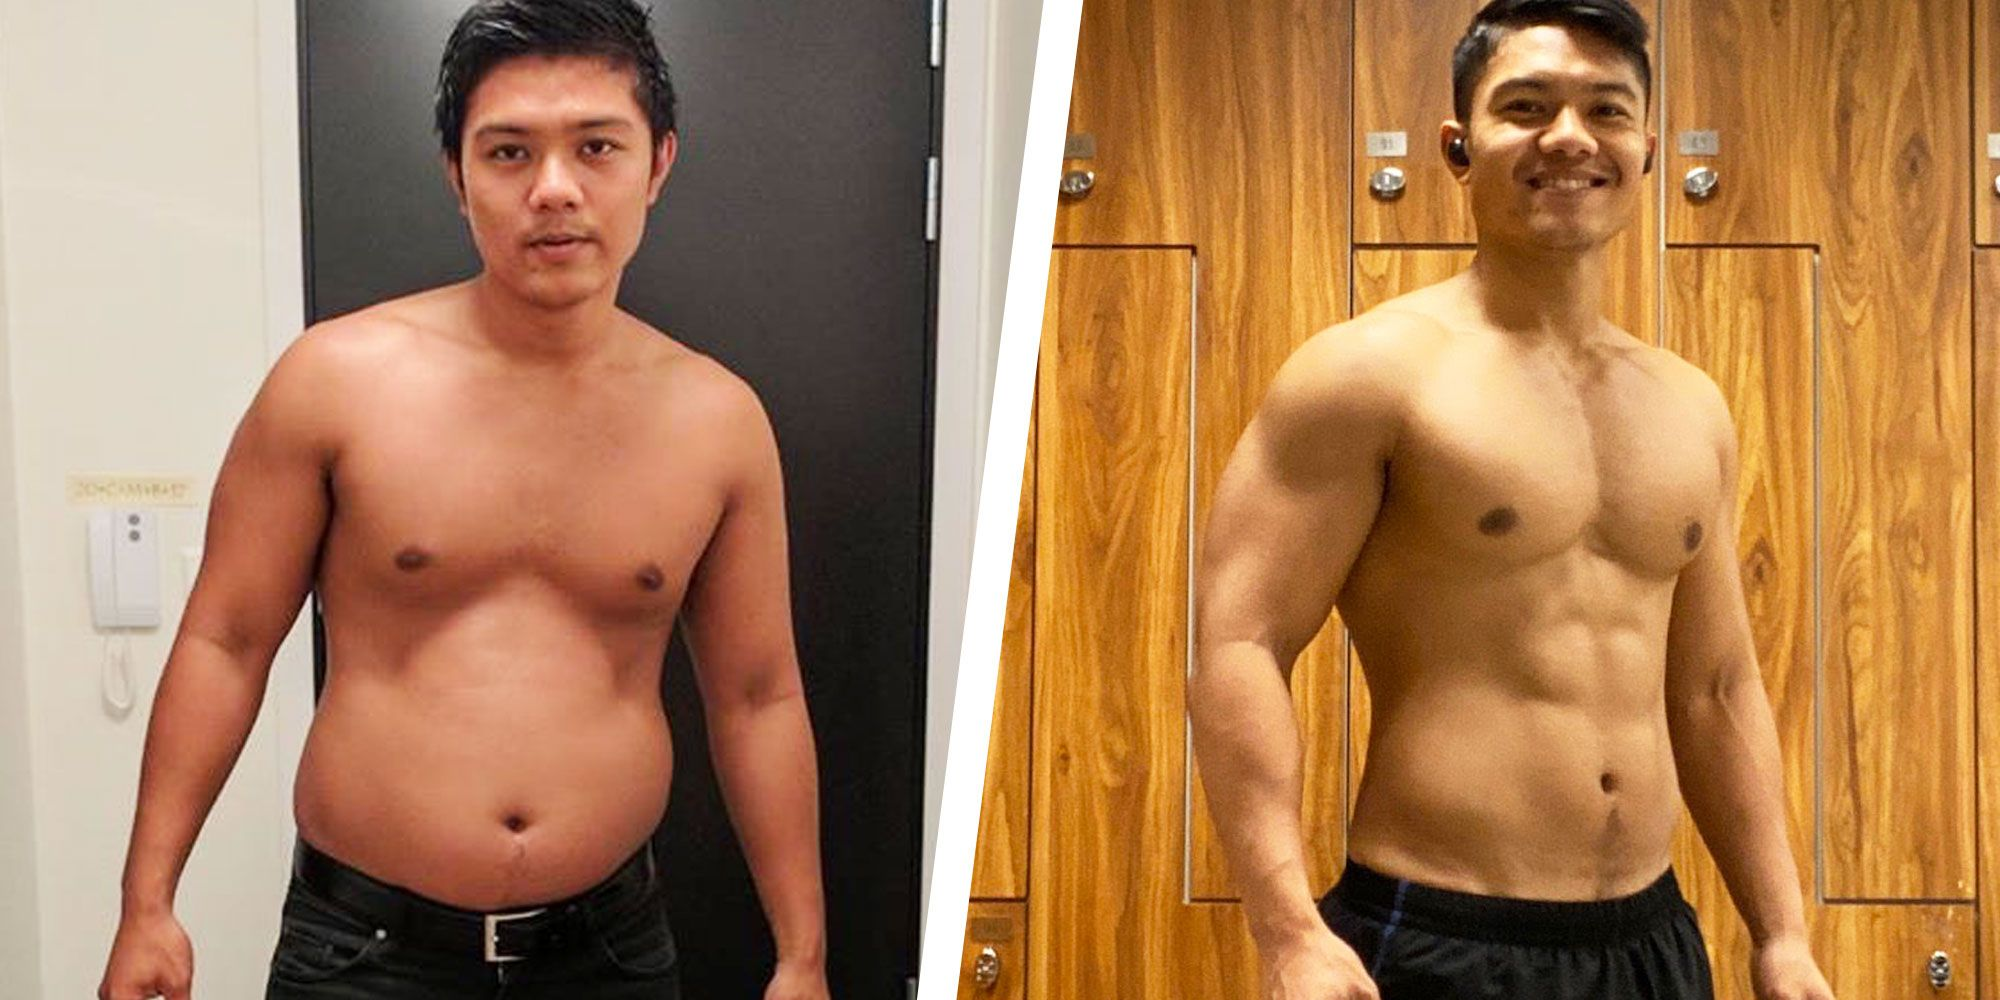 Simple Diet Changes Helped This Guy Lose Weight and Rediscover His Six-Pack